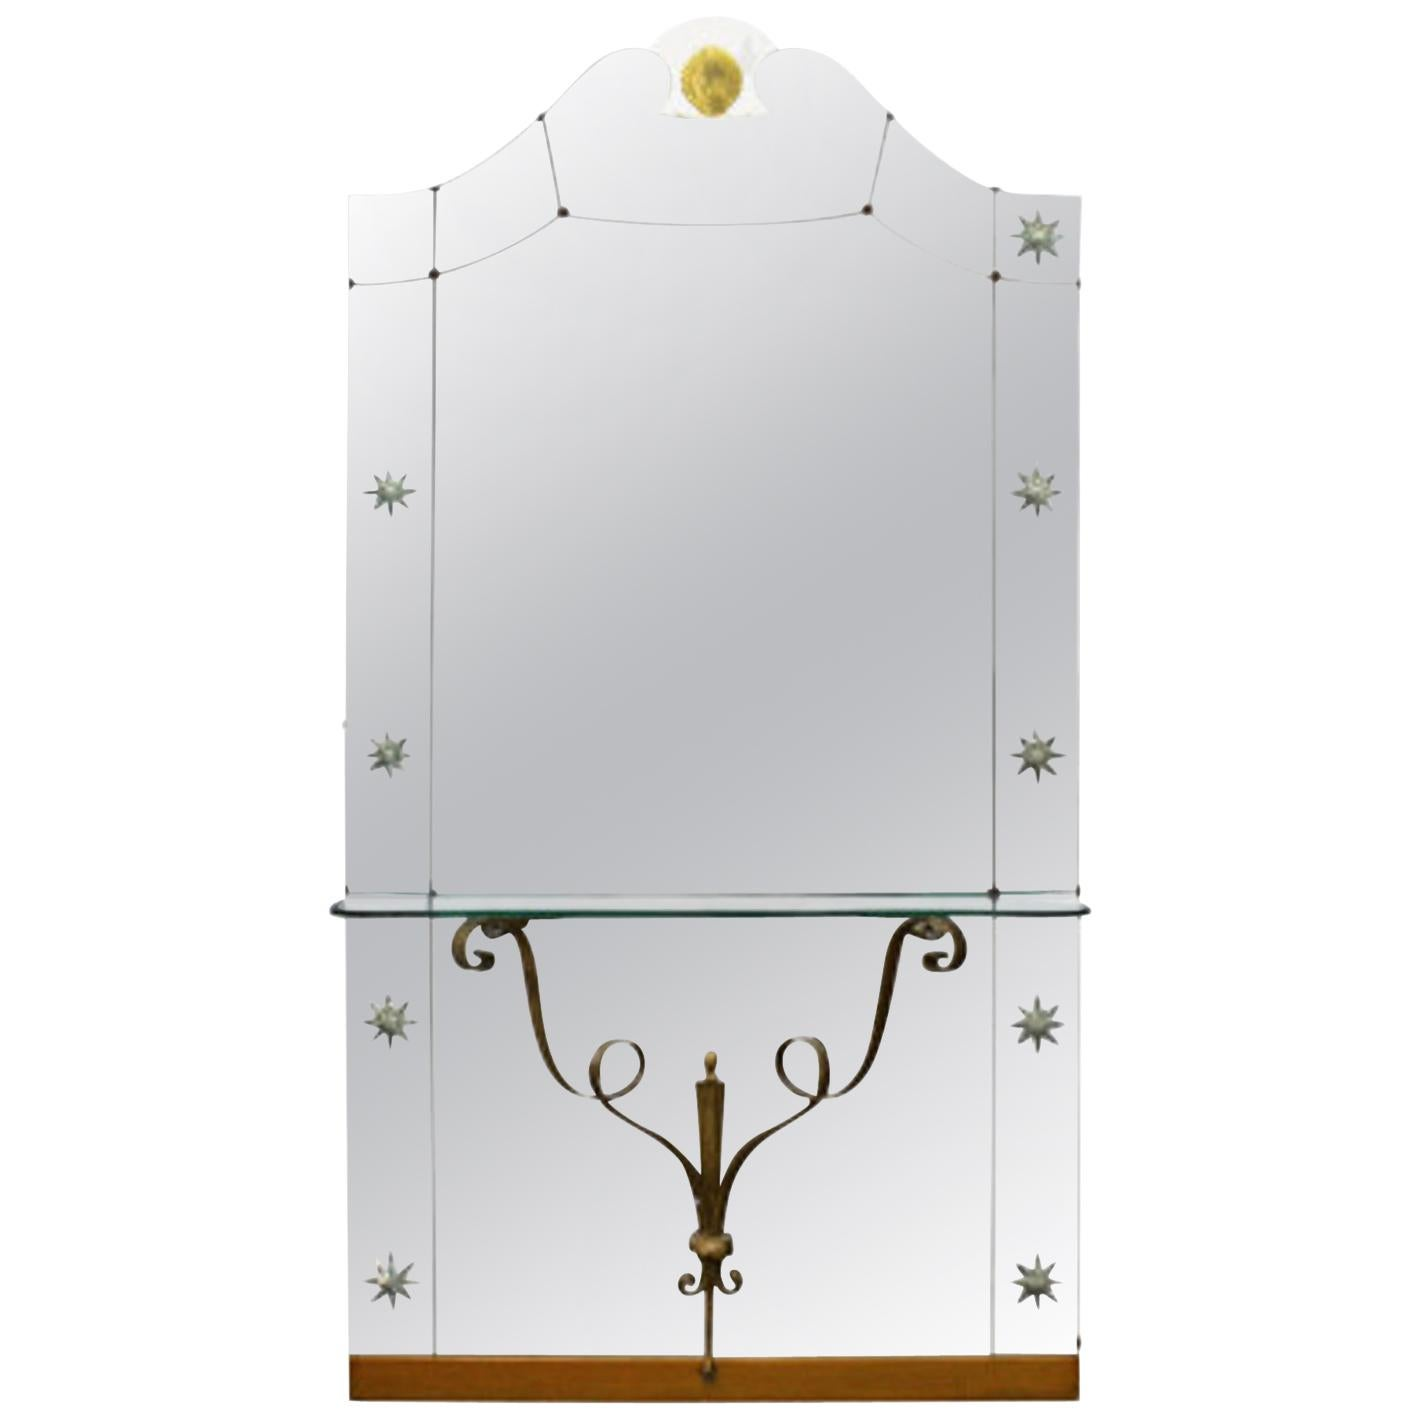 Cristal Arte Floor Mirrors and Full-Length Mirrors